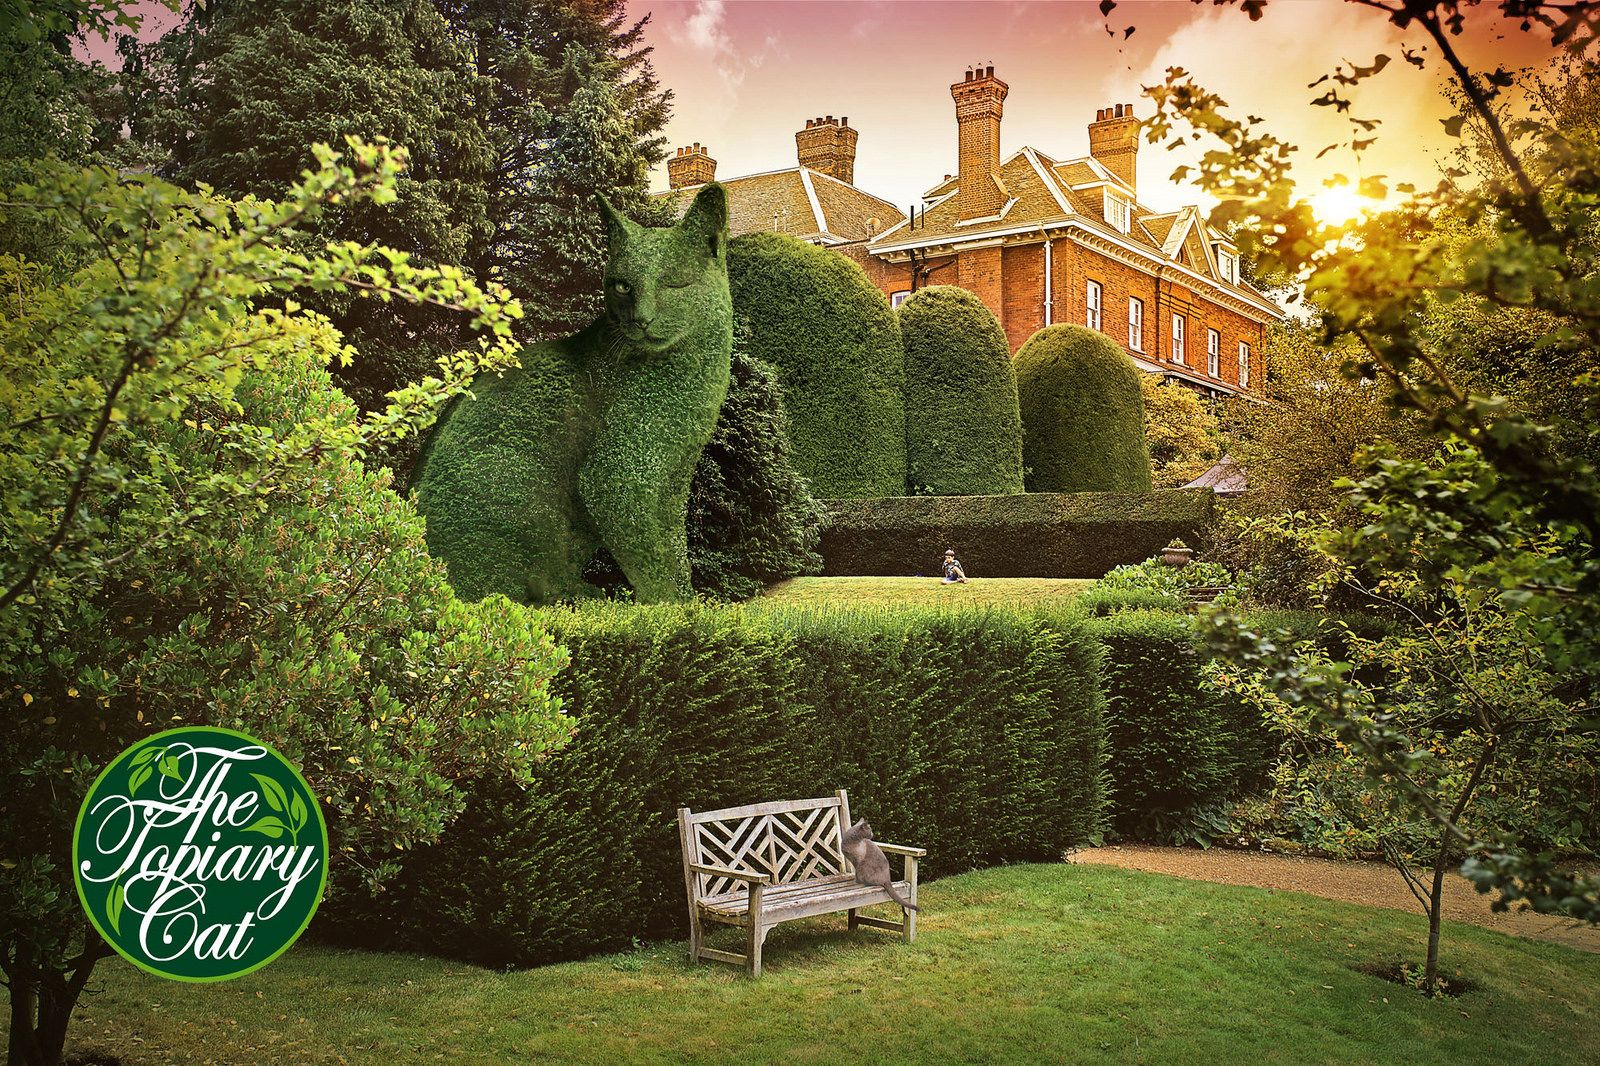 The Topiary Cat spots a friend | Art | Pinterest | Topiary, Cat and ...